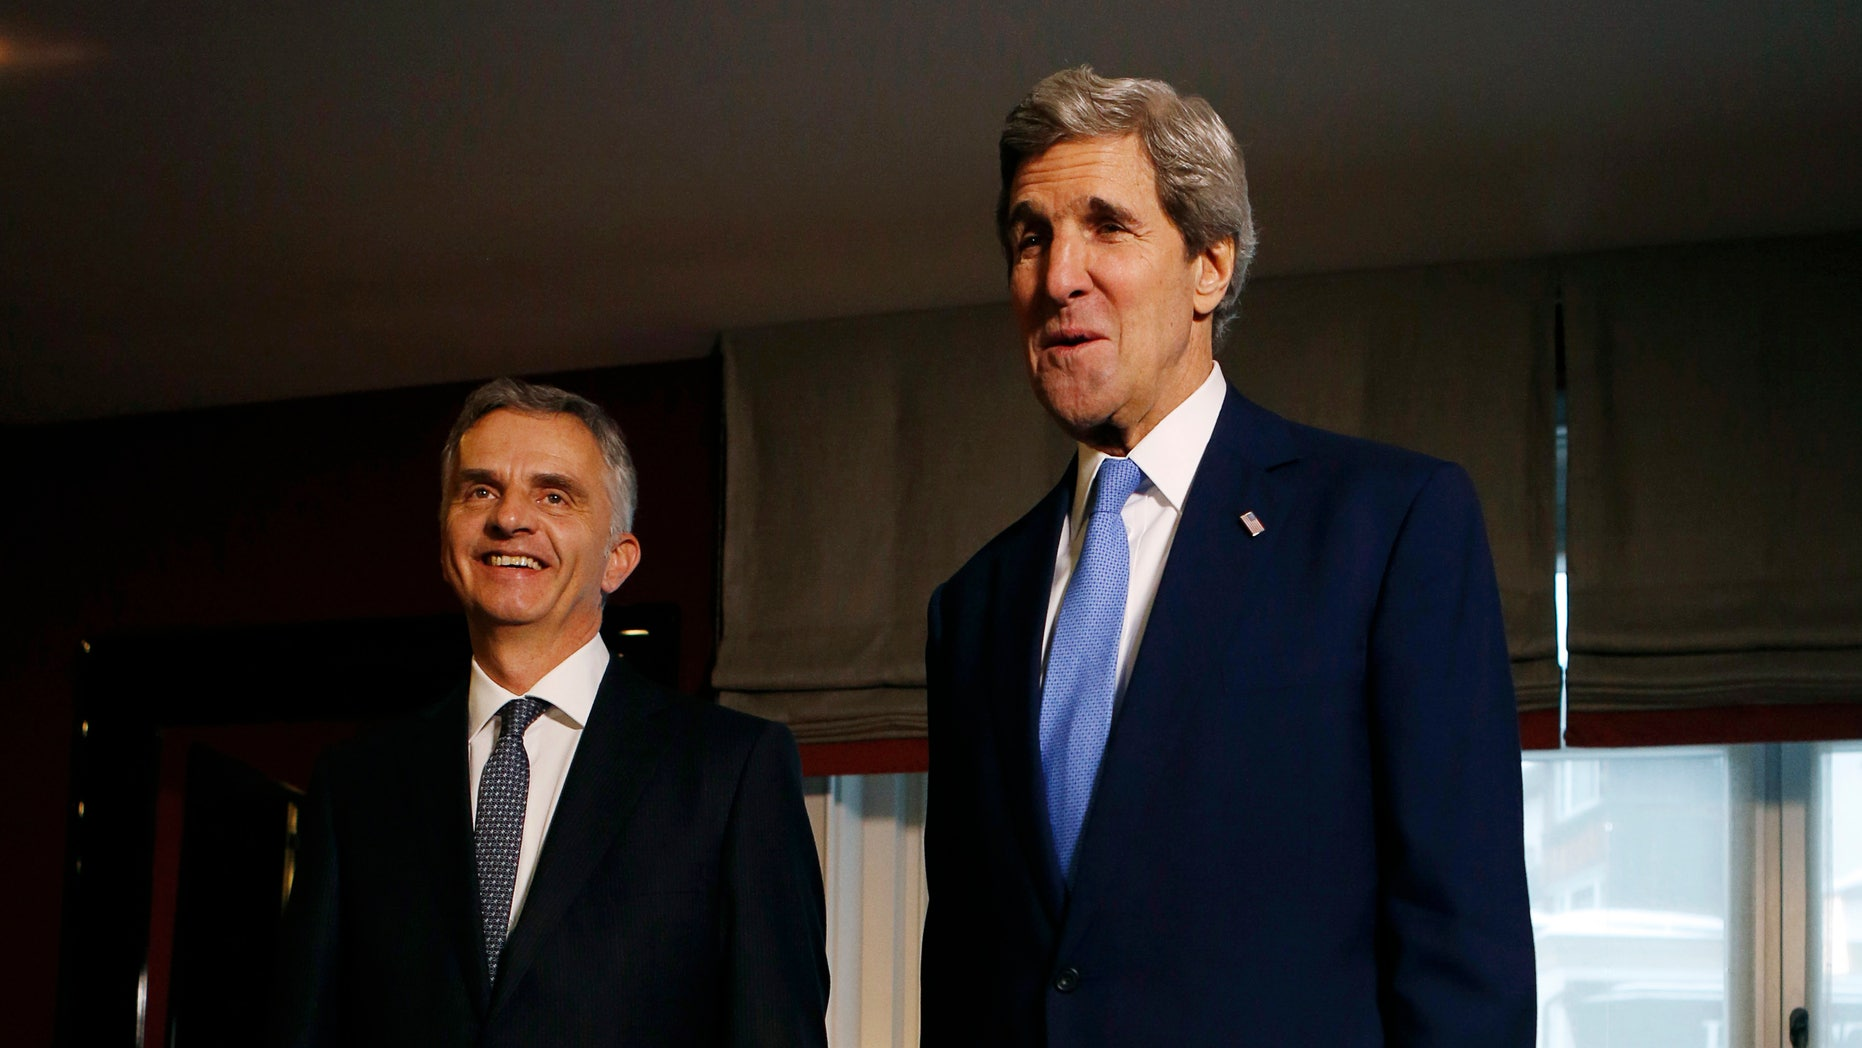 U.S. Secretary of State John Kerry, right, poses with Swiss President Didier Burkhalter for photographers in Davos, Switzerland, Friday, Jan. 24, 2014. Kerry is attending the annual World Economic Forum meeting in the Swiss Alps. (AP Photo/Gary Cameron, Pool)